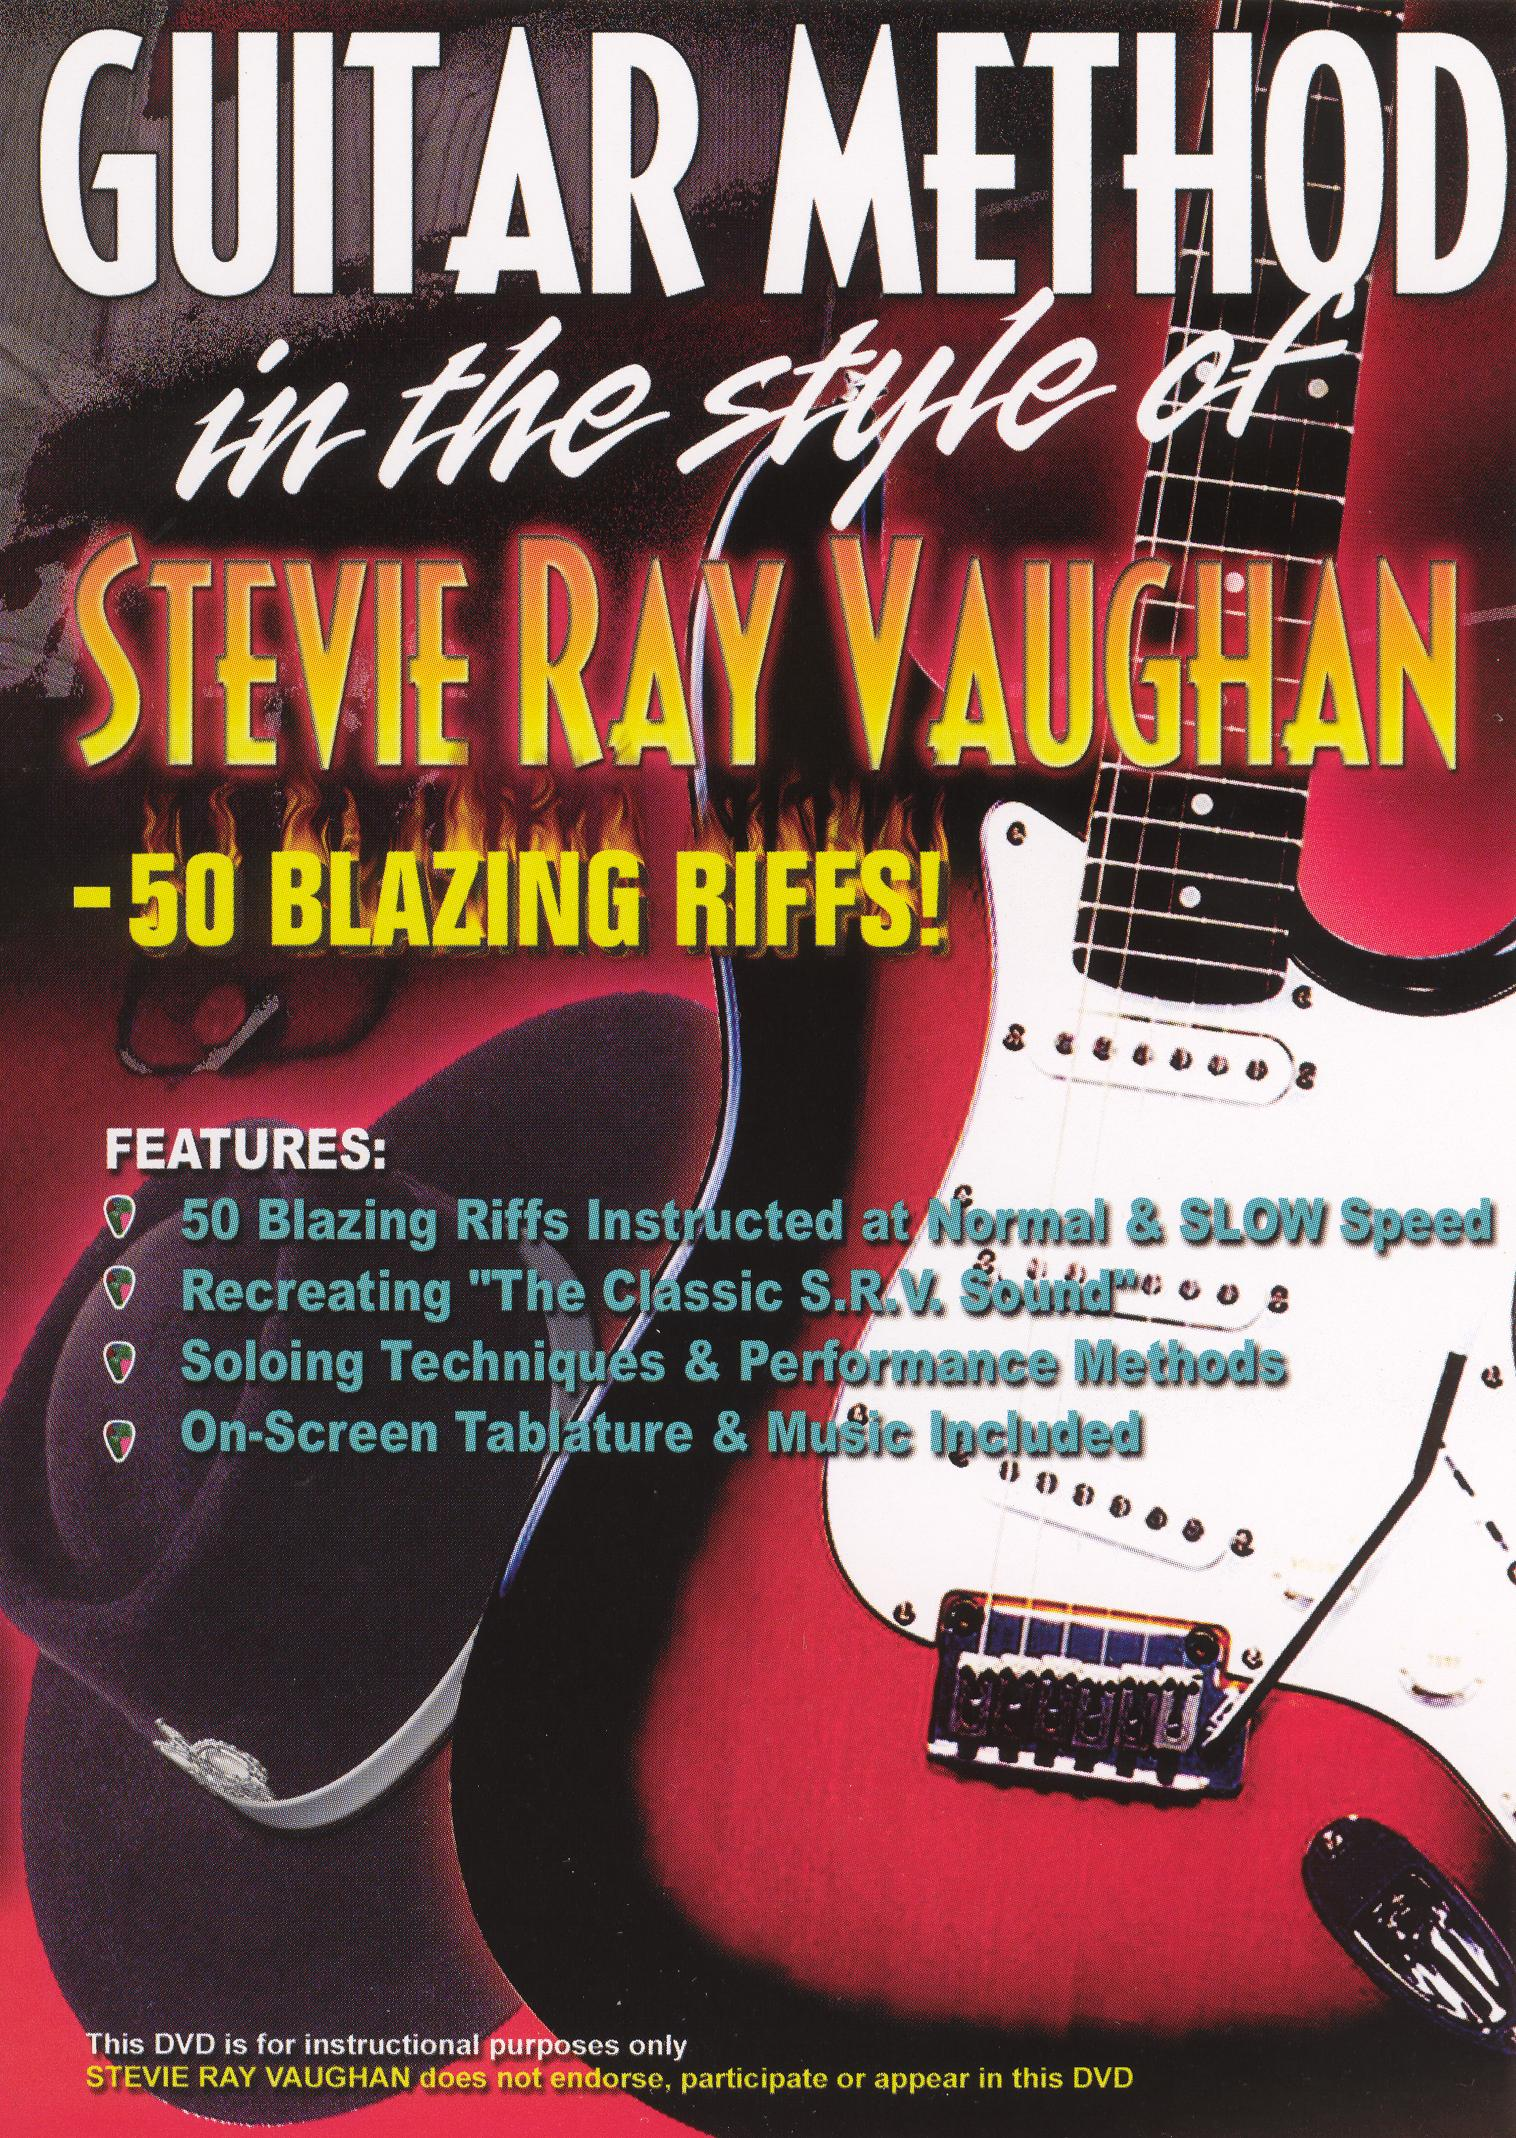 Stevie Ray Vaughan: 50 Blazing Riffs